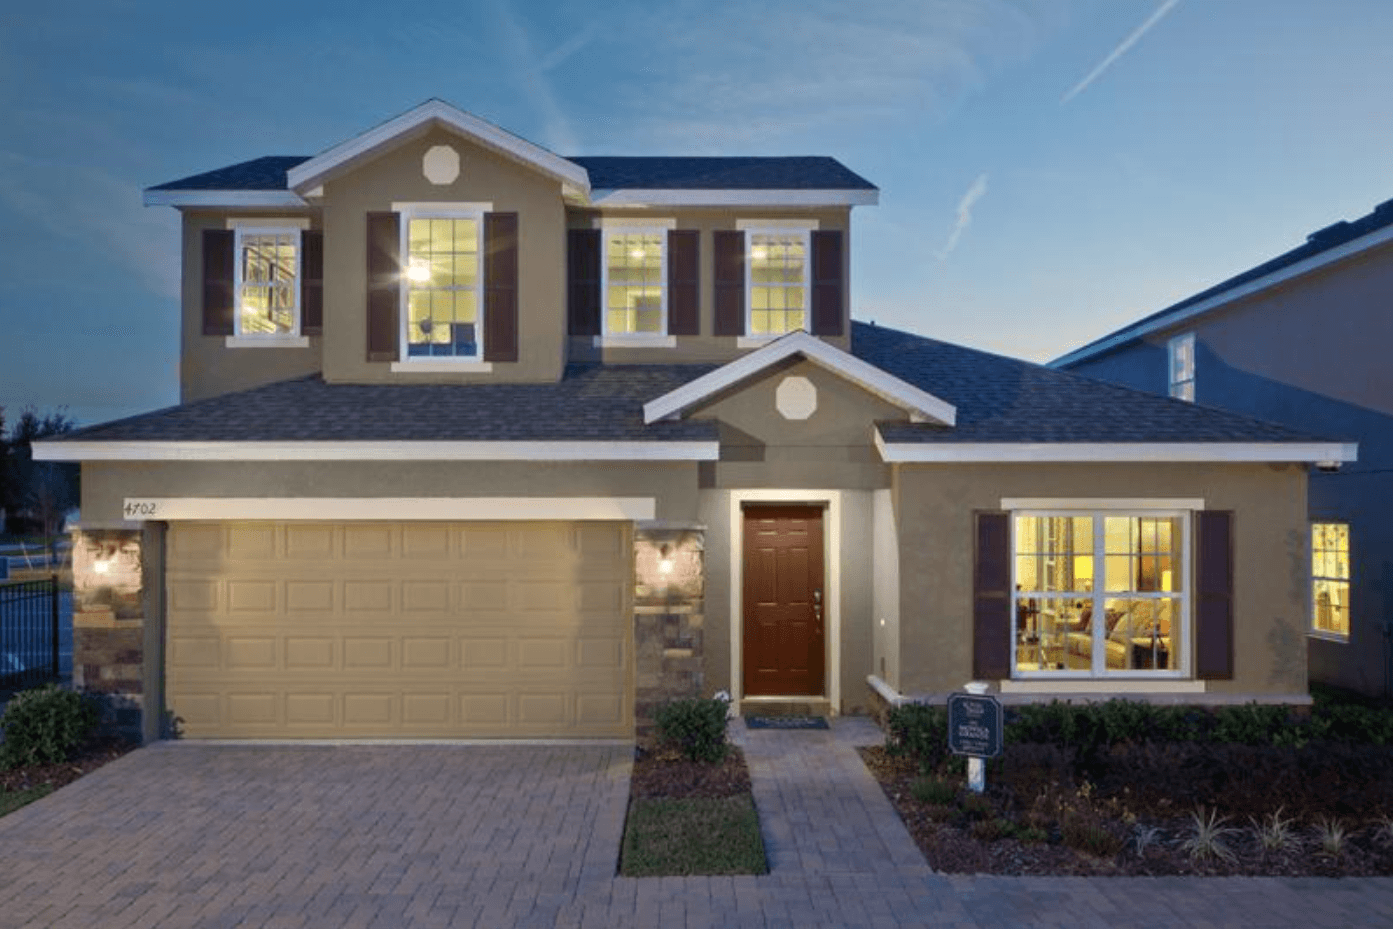 Photo of Laurel Estates in Davenport, FL 33897